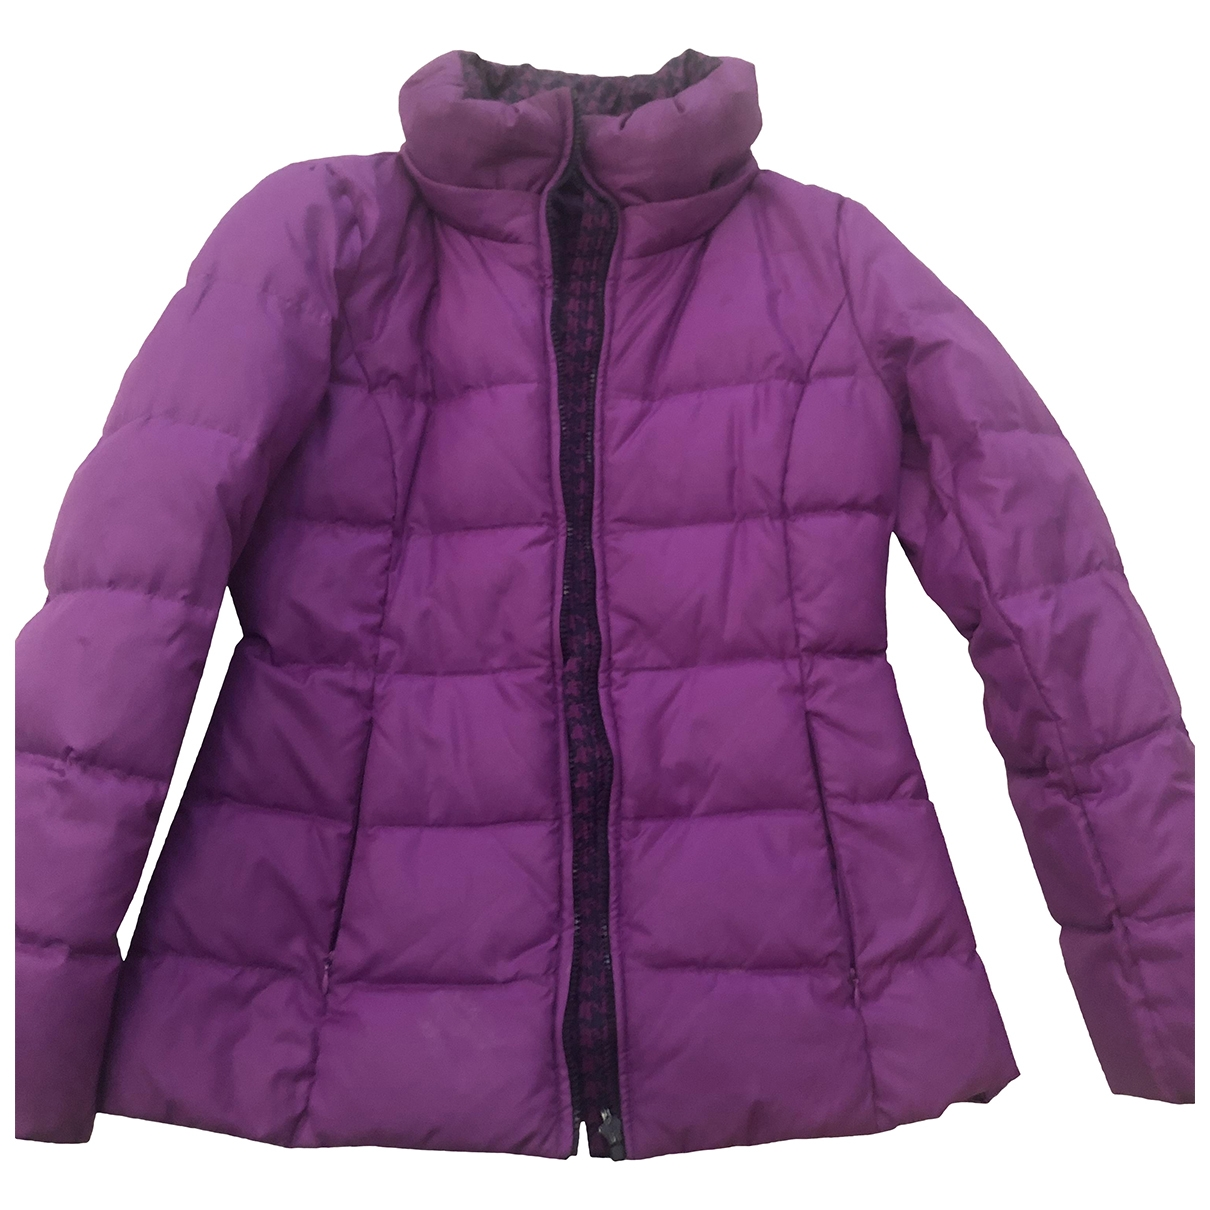 Max & Co \N jacket for Women 38 FR